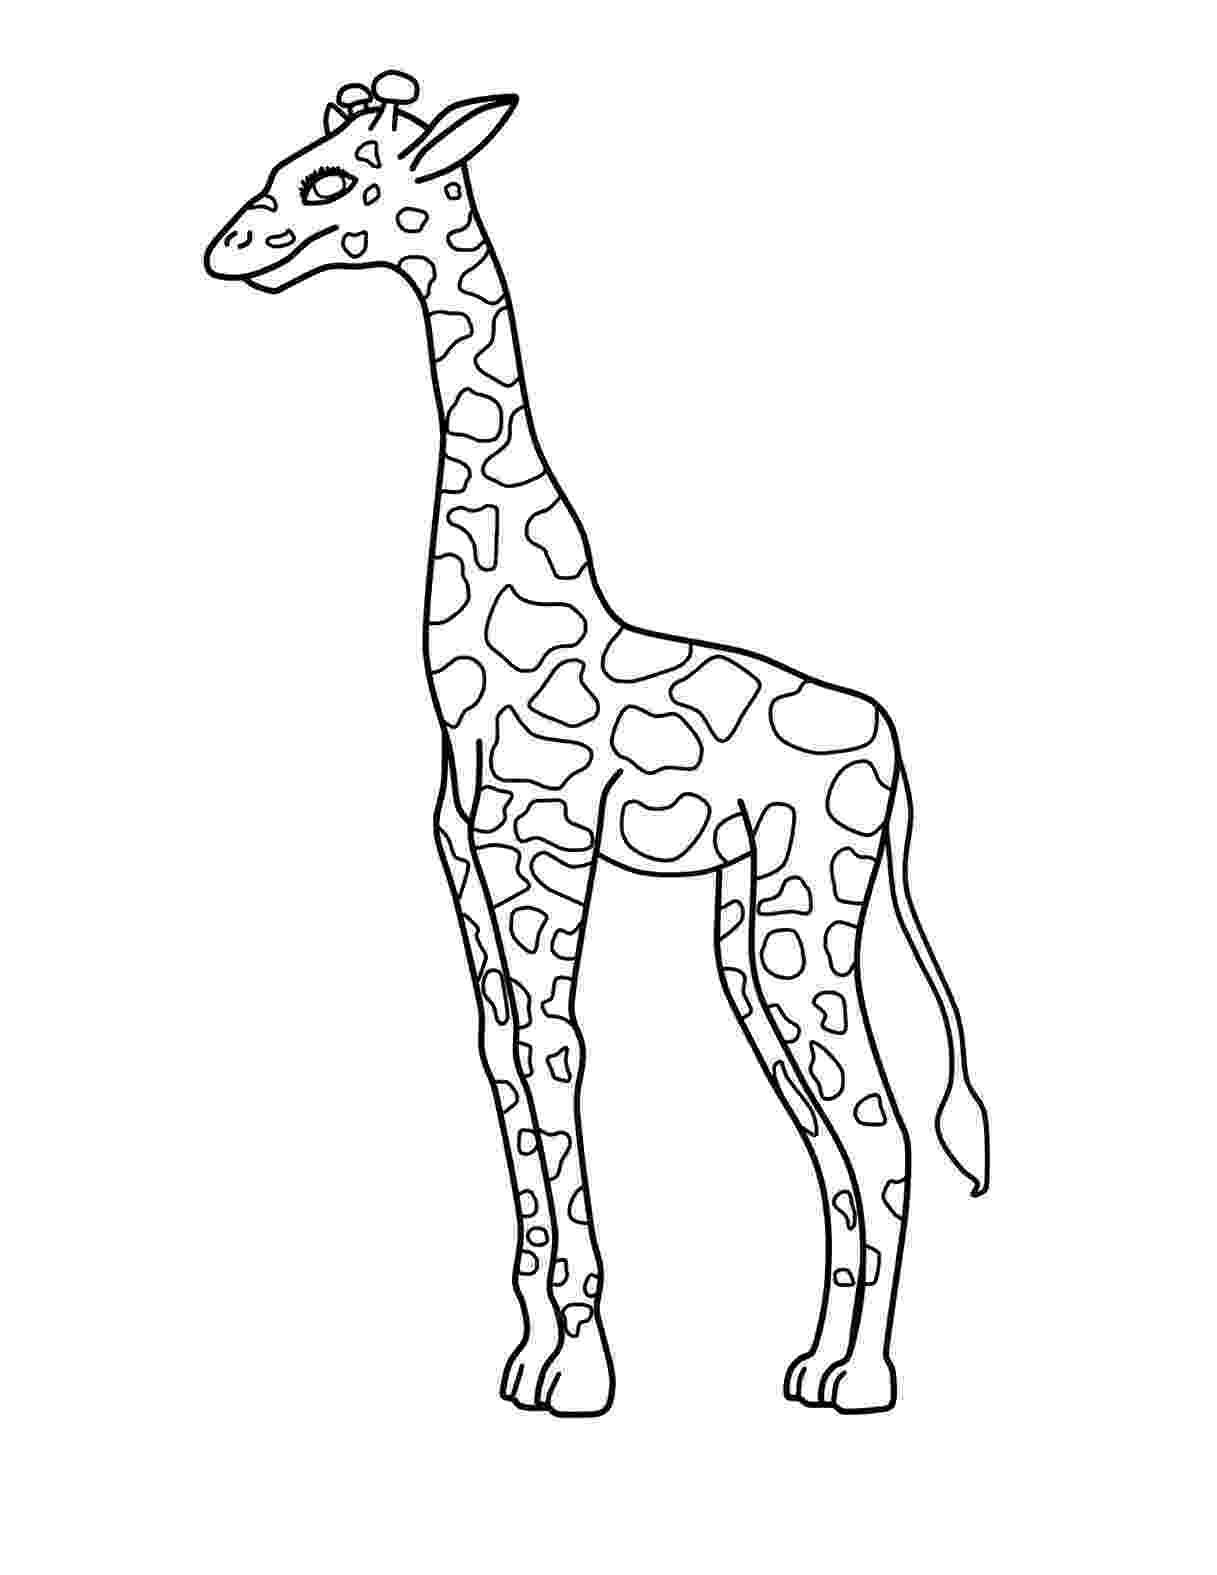 giraffe to color free printable giraffe coloring pages for kids color giraffe to